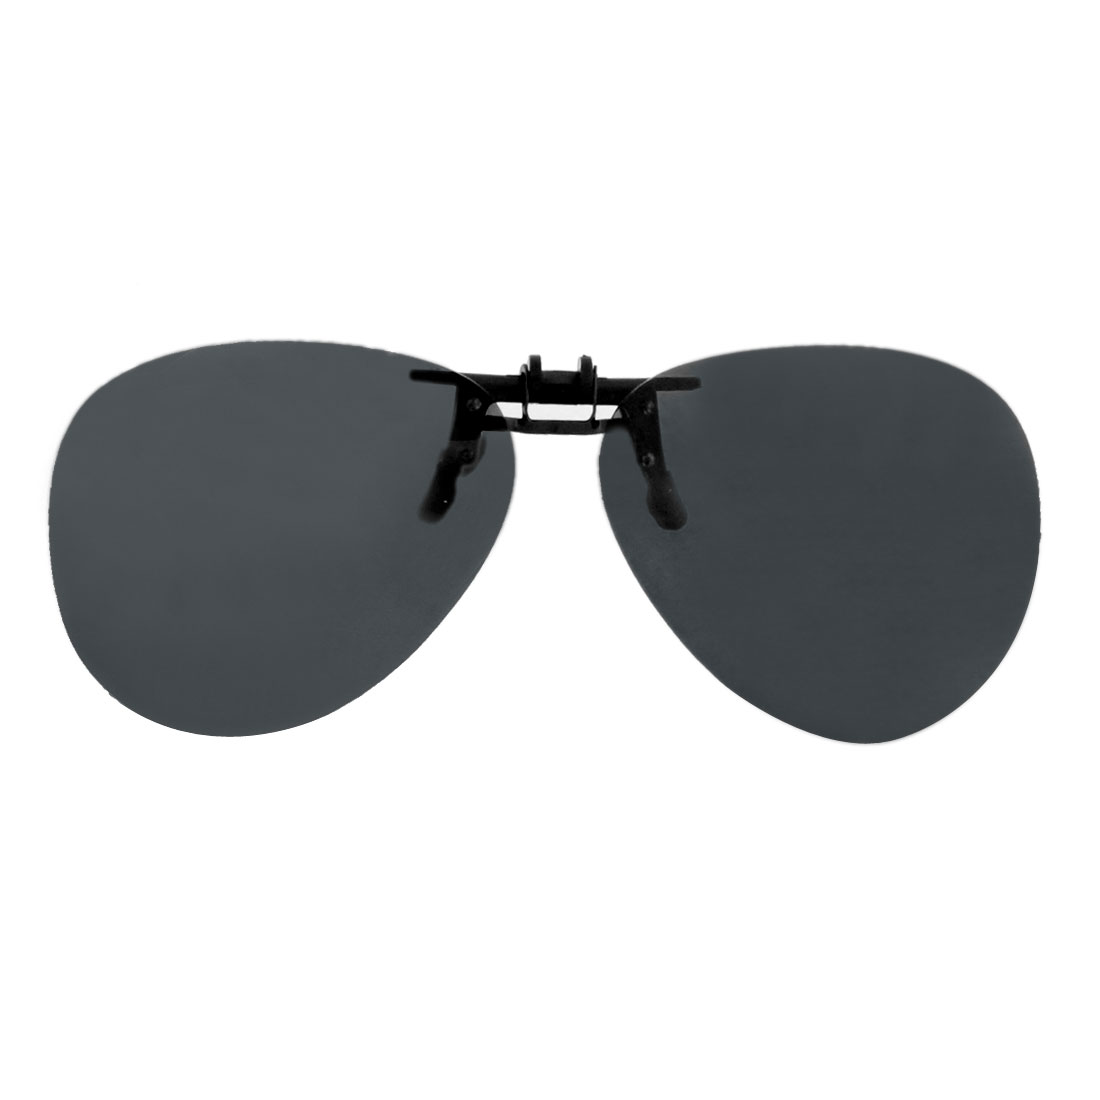 Unisex Teardrop Shape Black Lens Rimless Anti Glare Clip Polarized Sunglasses Eyeglasses